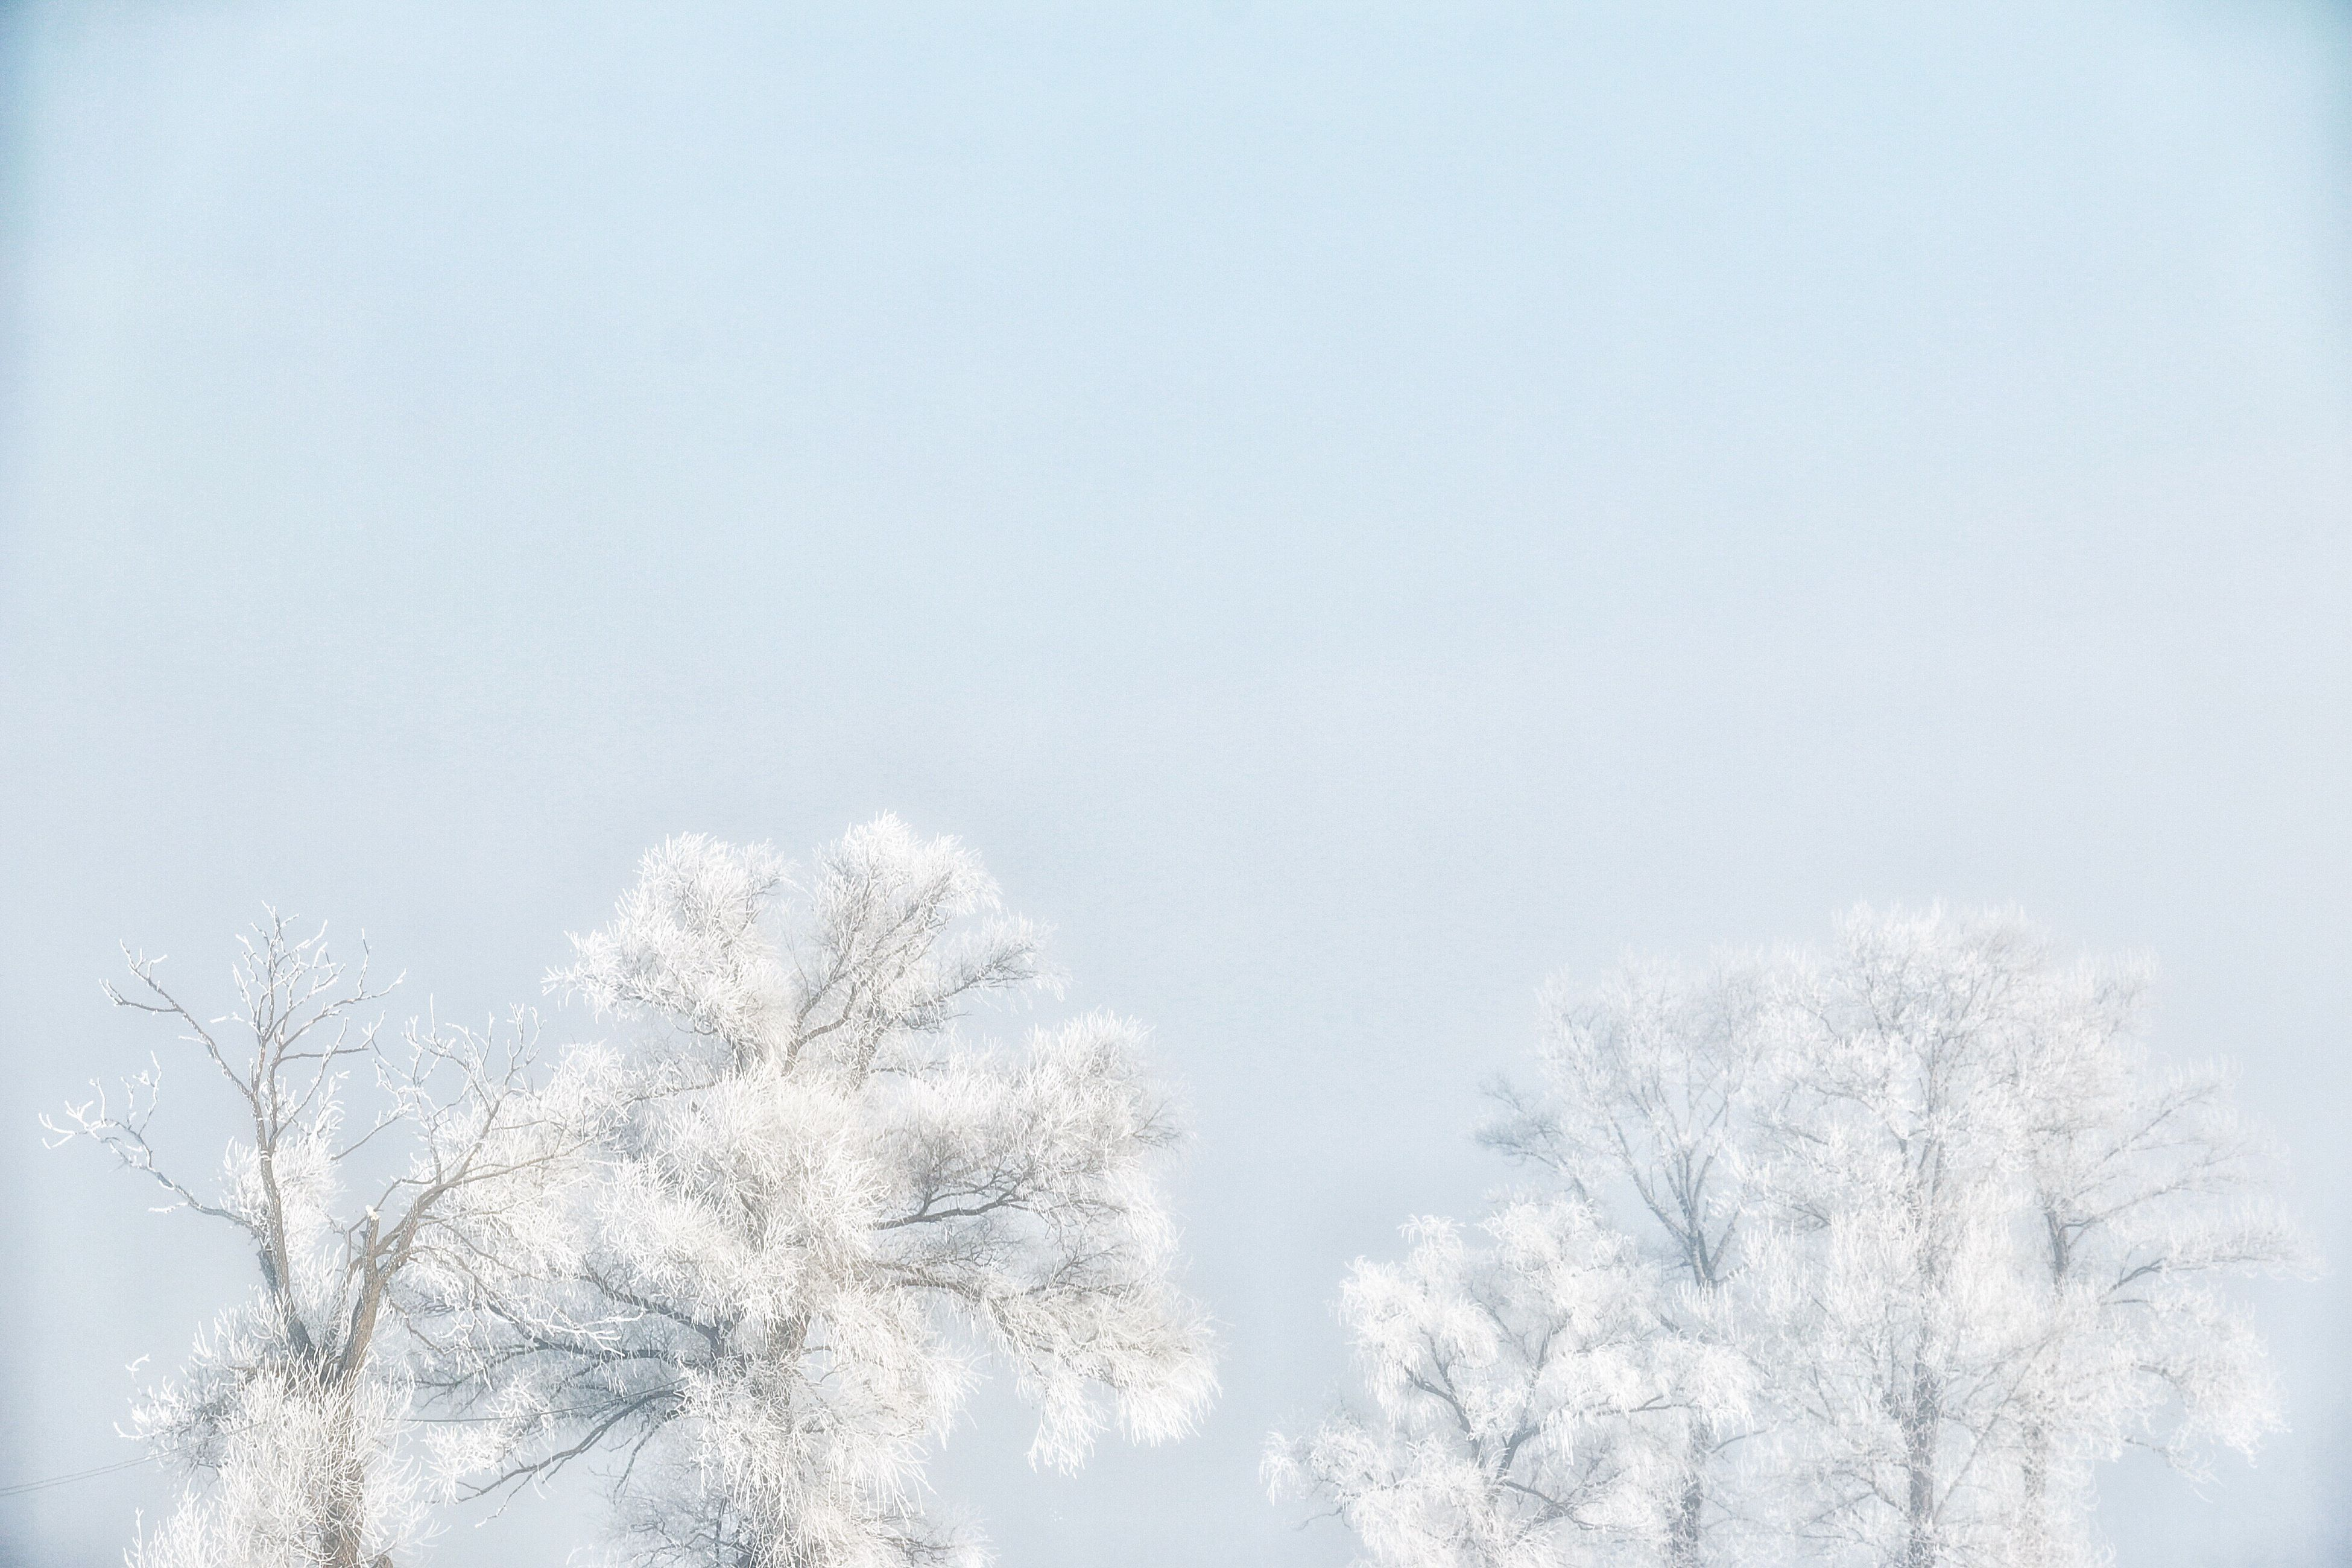 snow, winter, snowflake, cold temperature, sky, tree, nature, no people, beauty in nature, outdoors, snowing, day, christmas, treetop, close-up